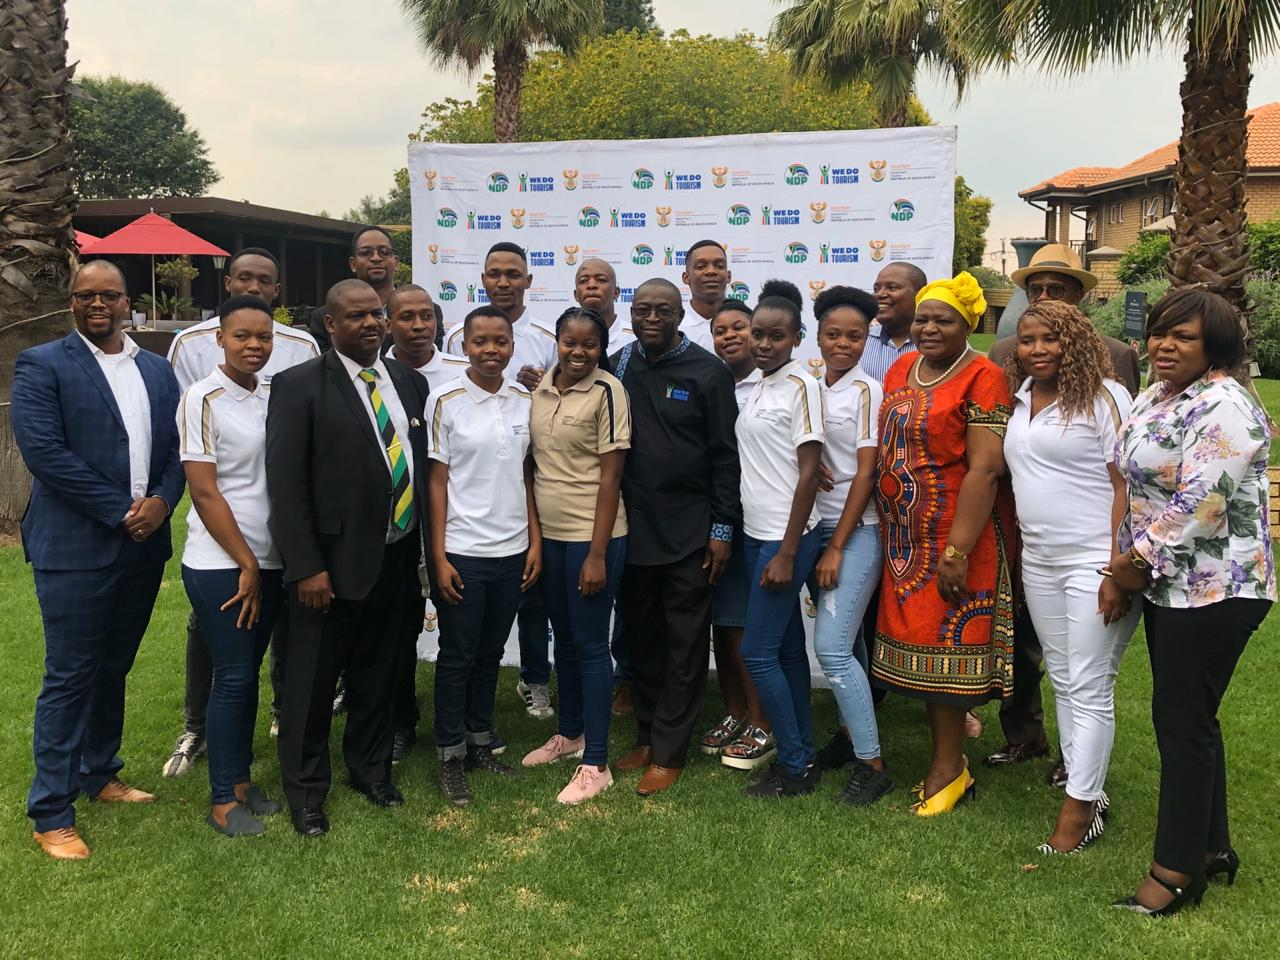 Learners receive credentials in Responsible Tourism Practices